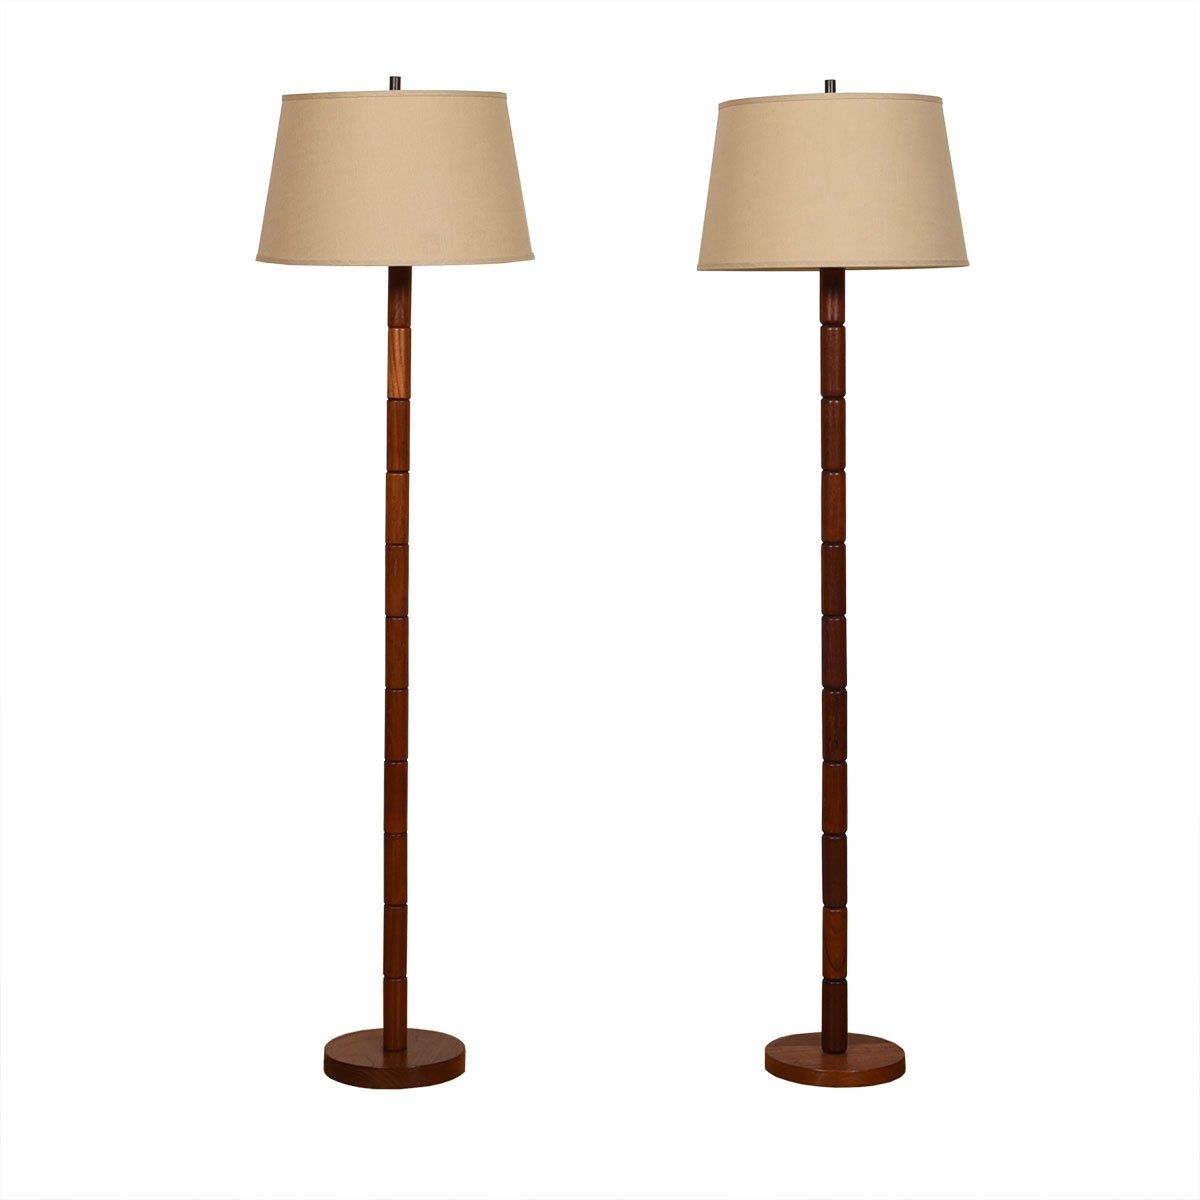 Pair of Teak Floor Lamps with Stacked Nodule Design